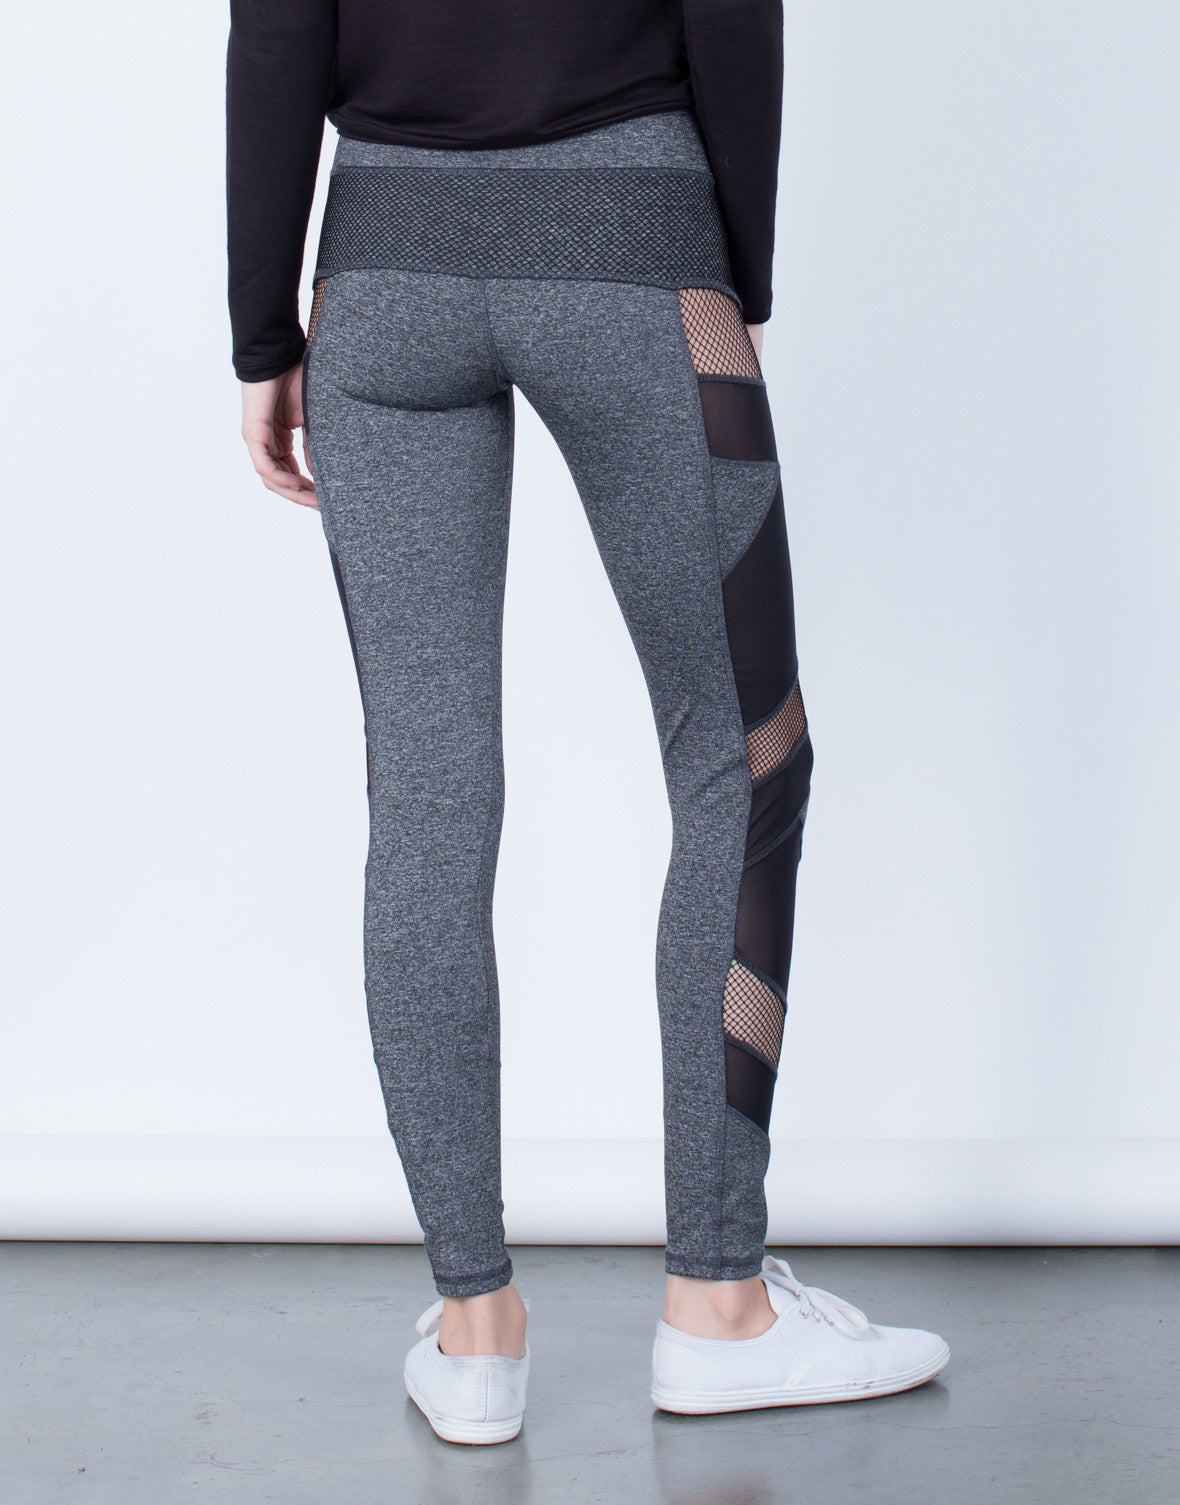 Back View of Side Mesh Activewear Leggings